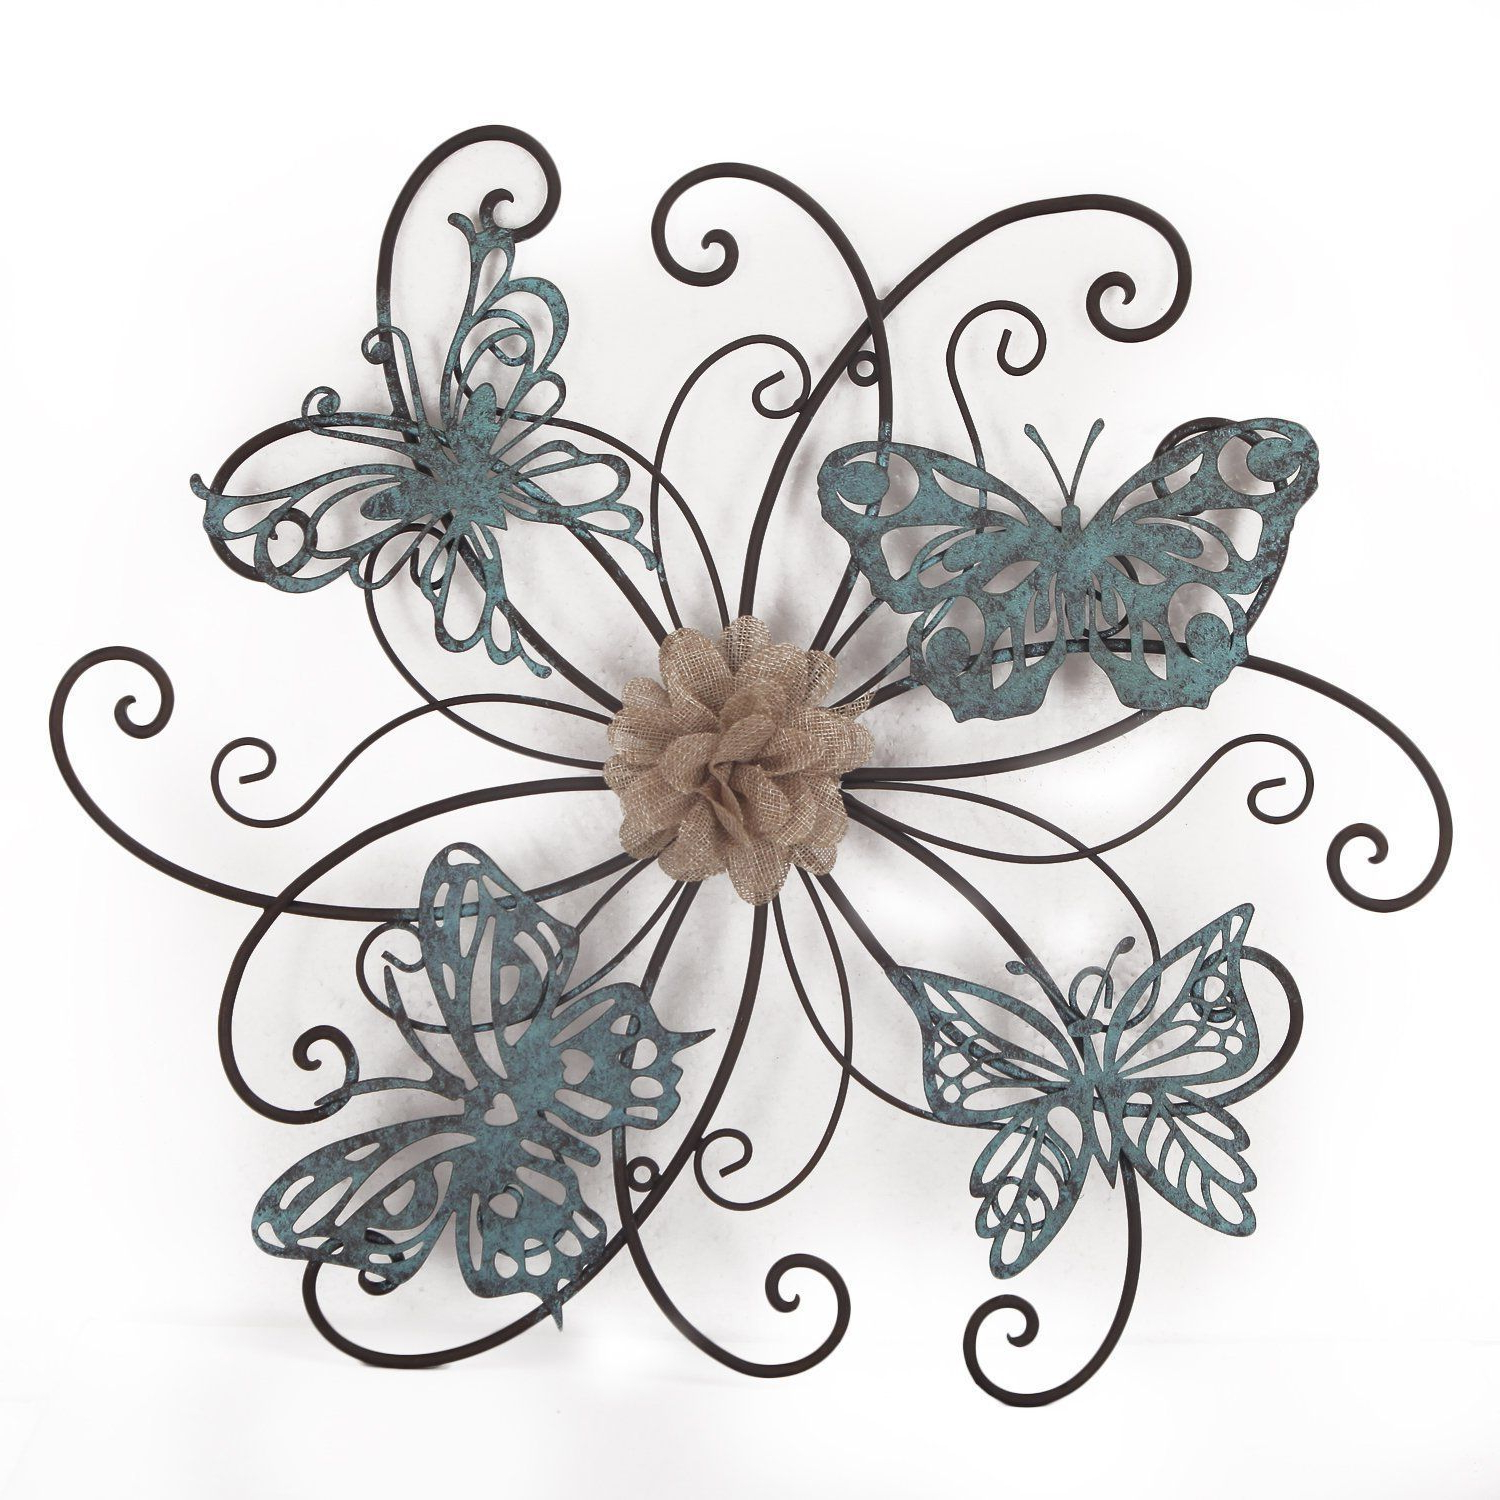 Adeco Flower And Butterfly Urban Design Metal (Grey) Wall Decor For Throughout Most Recent Flower Urban Design Metal Wall Decor (Gallery 3 of 20)